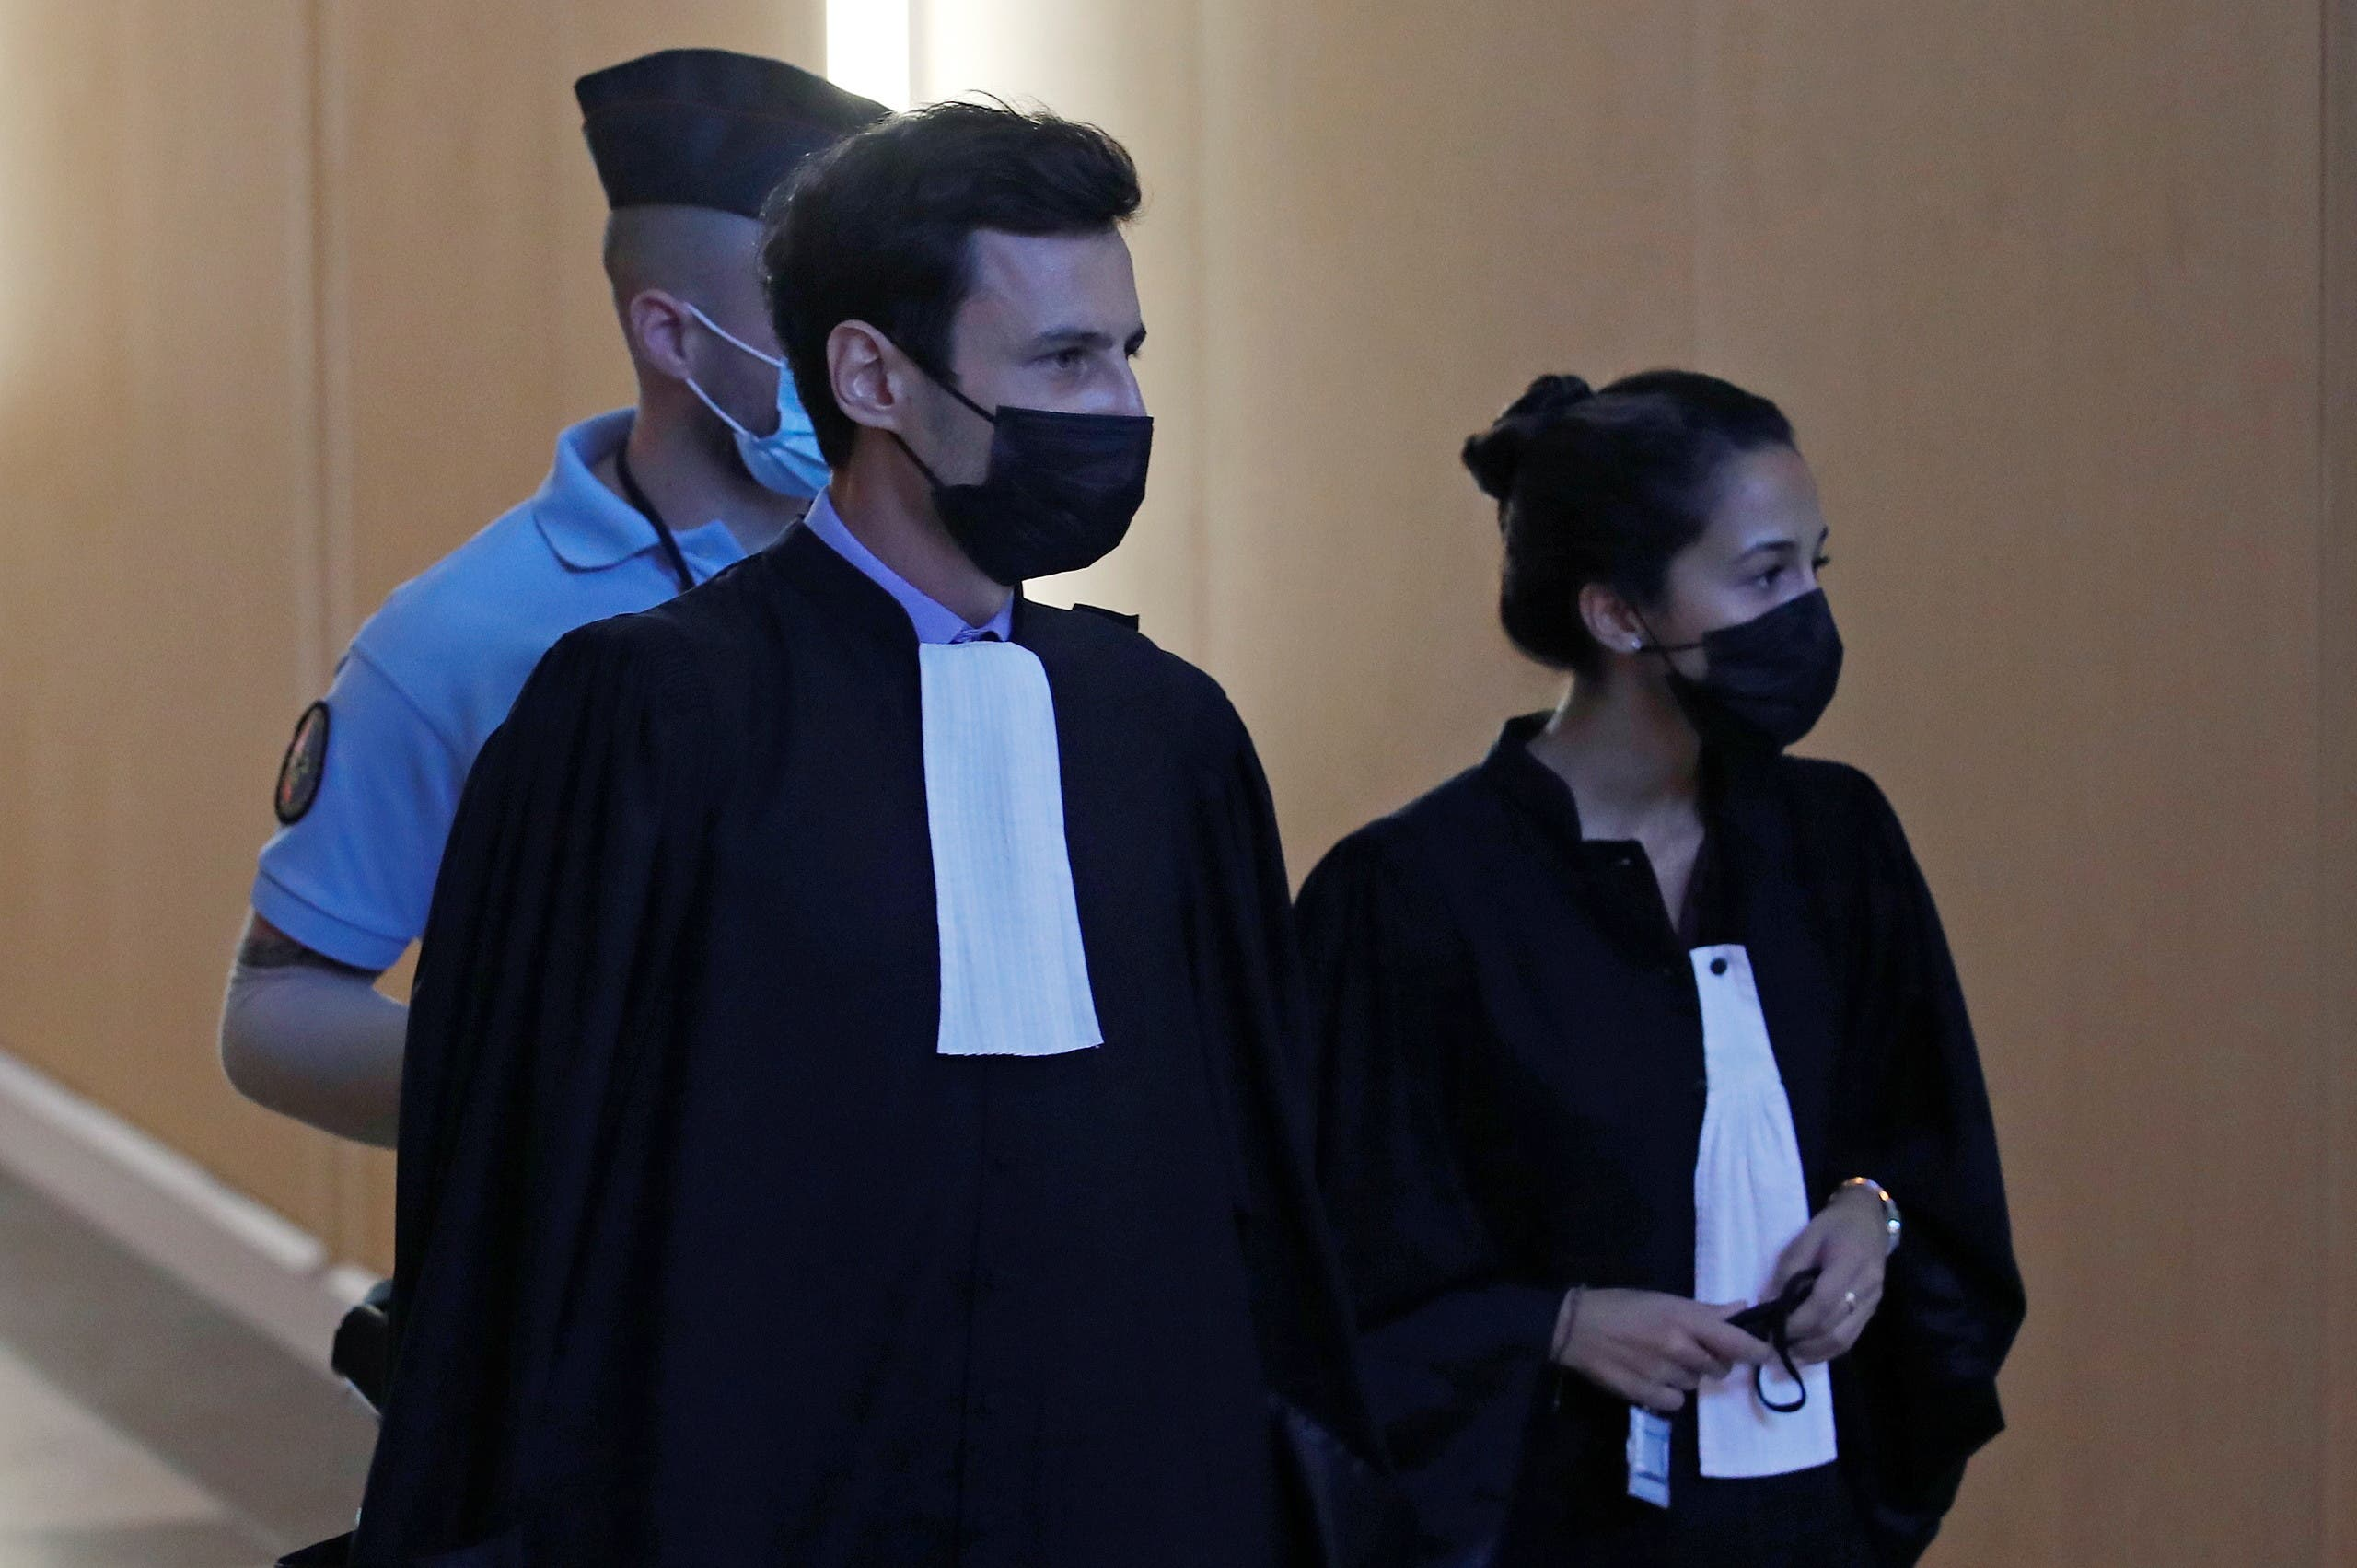 Olivia Ronen and Martin Vettes, lawyers of Salah Abdeslam, one of the accused, who is widely believed to be the only surviving member of the group suspected of carried out the attacks, arrive for the start of the trial of the Paris' November 2015 attacks at the Paris courthouse on the Ile de la Cite, in Paris, France, September 8, 2021. (Reuters)